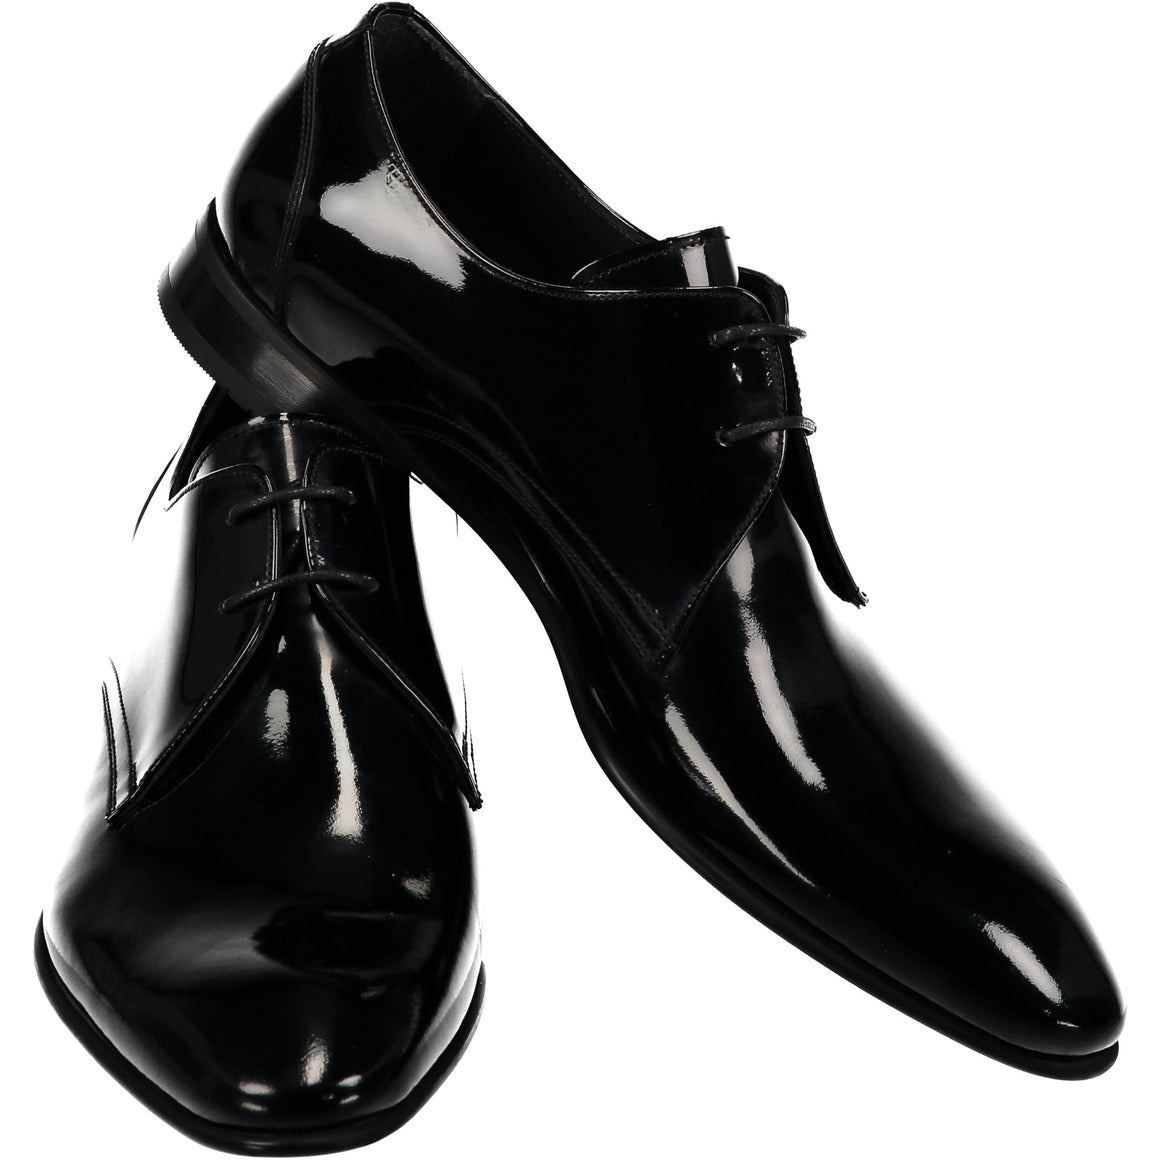 Black shiny shoes with lace